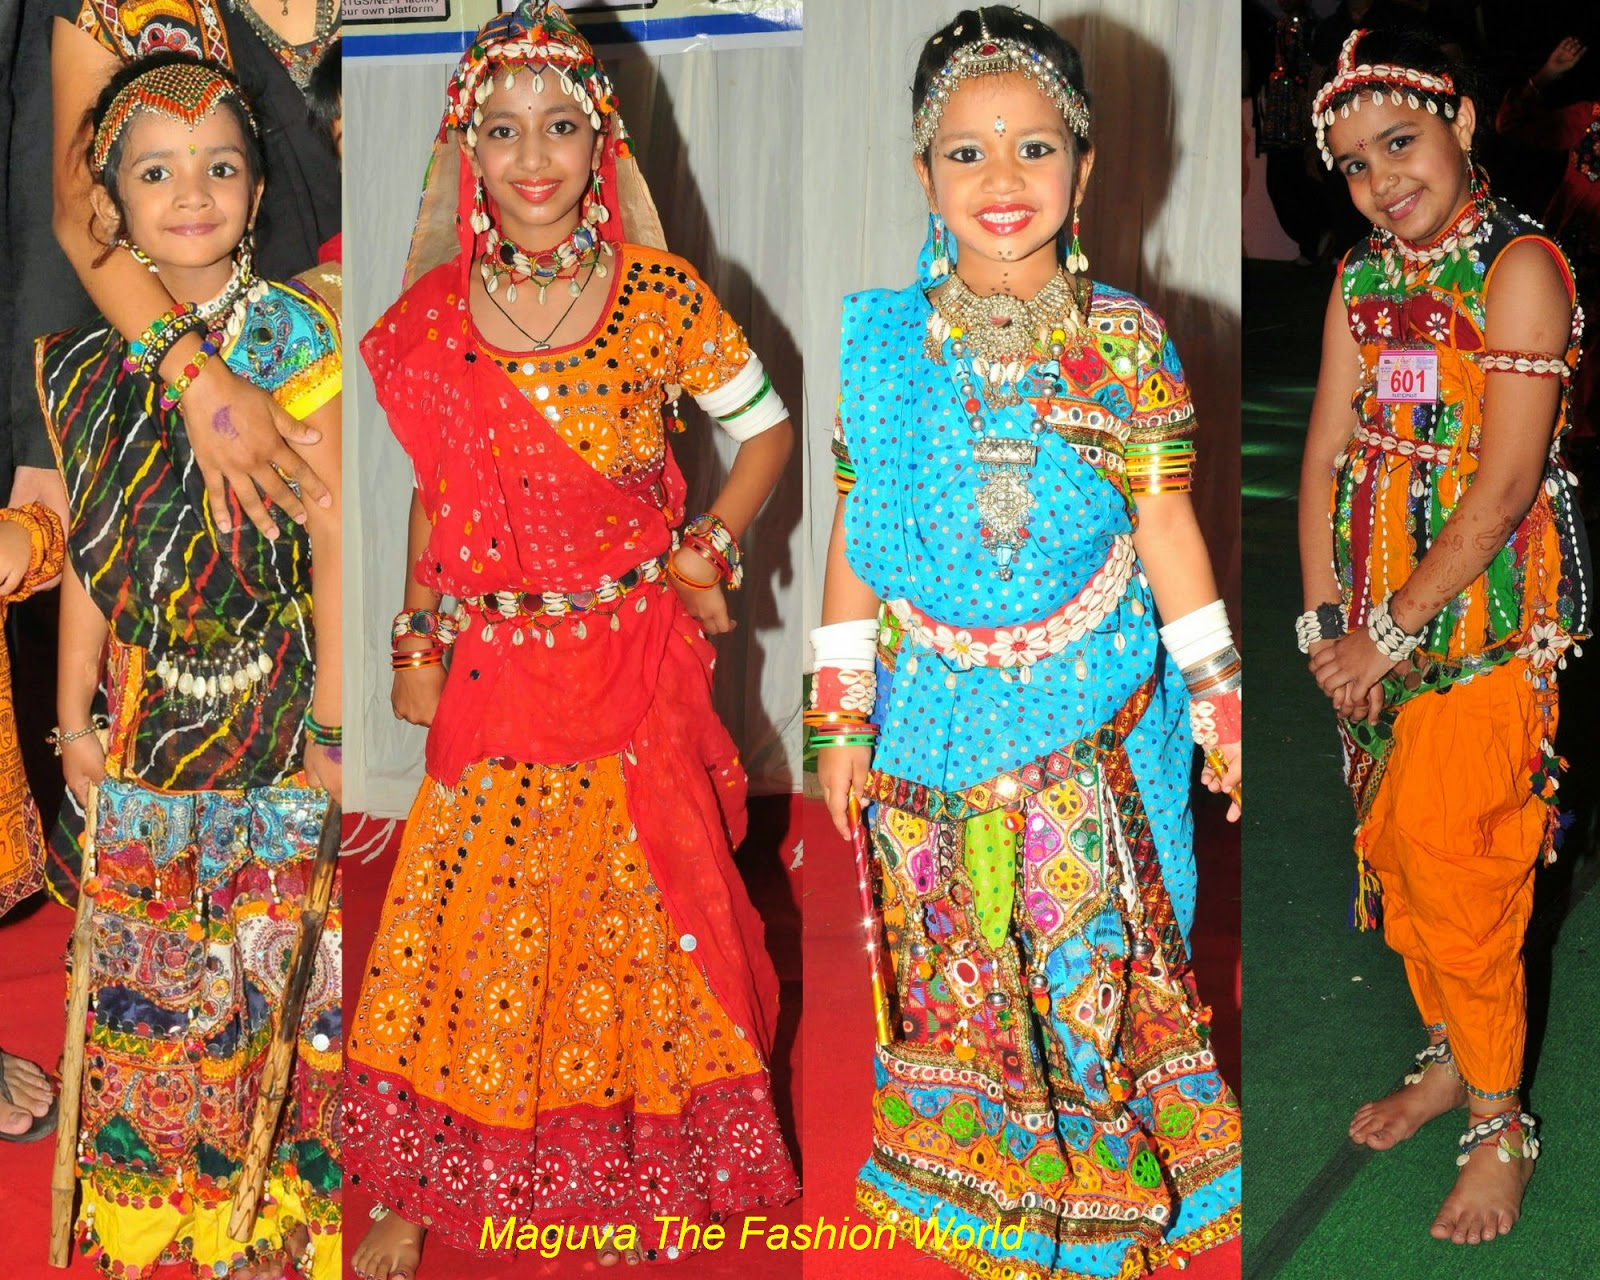 Kids in cute dandiya costumes - Maguva The Fashion World